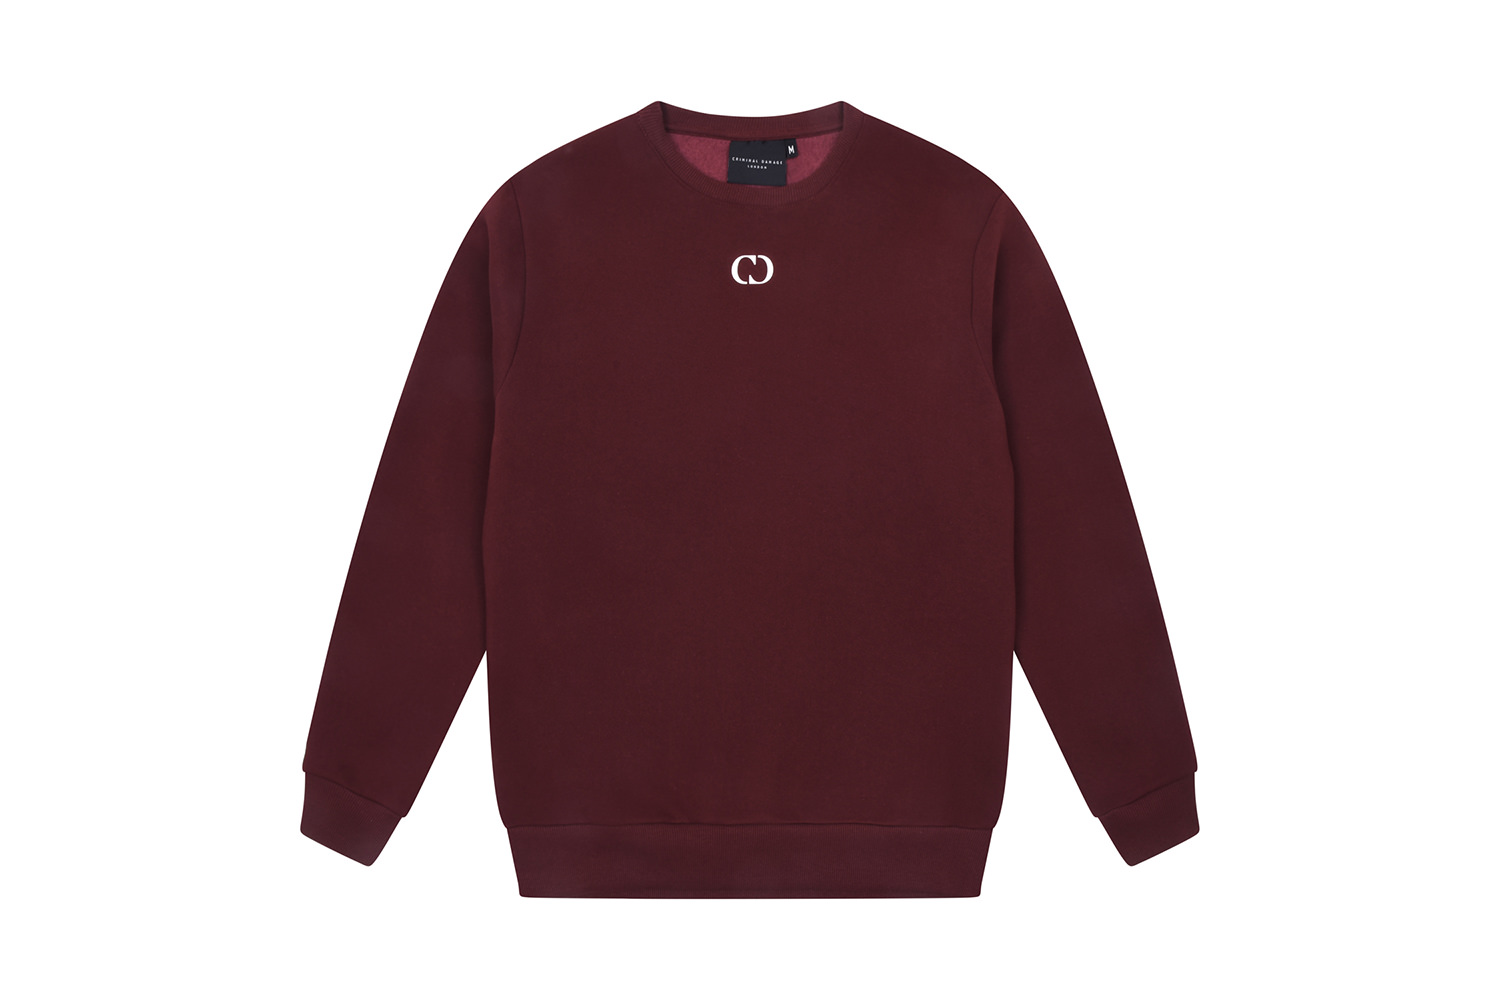 Jumper-ecommerce-Flay-lay-photography-london